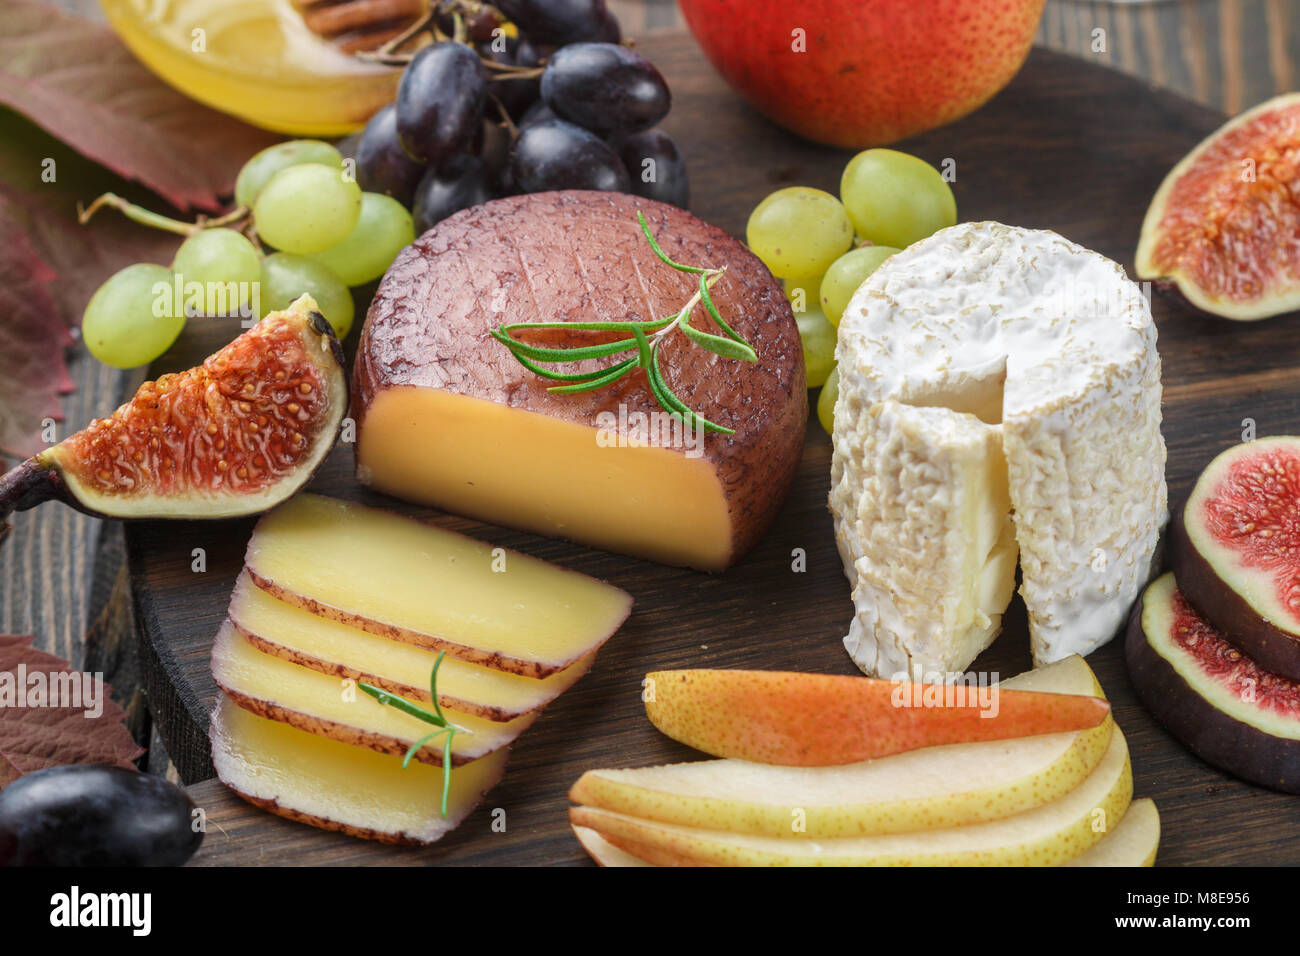 Set of fine cheeses with fruit and honey. Camembert. Bree. Grapes, figs, pears, and rosemary. Wine snacks for foodies. - Stock Image